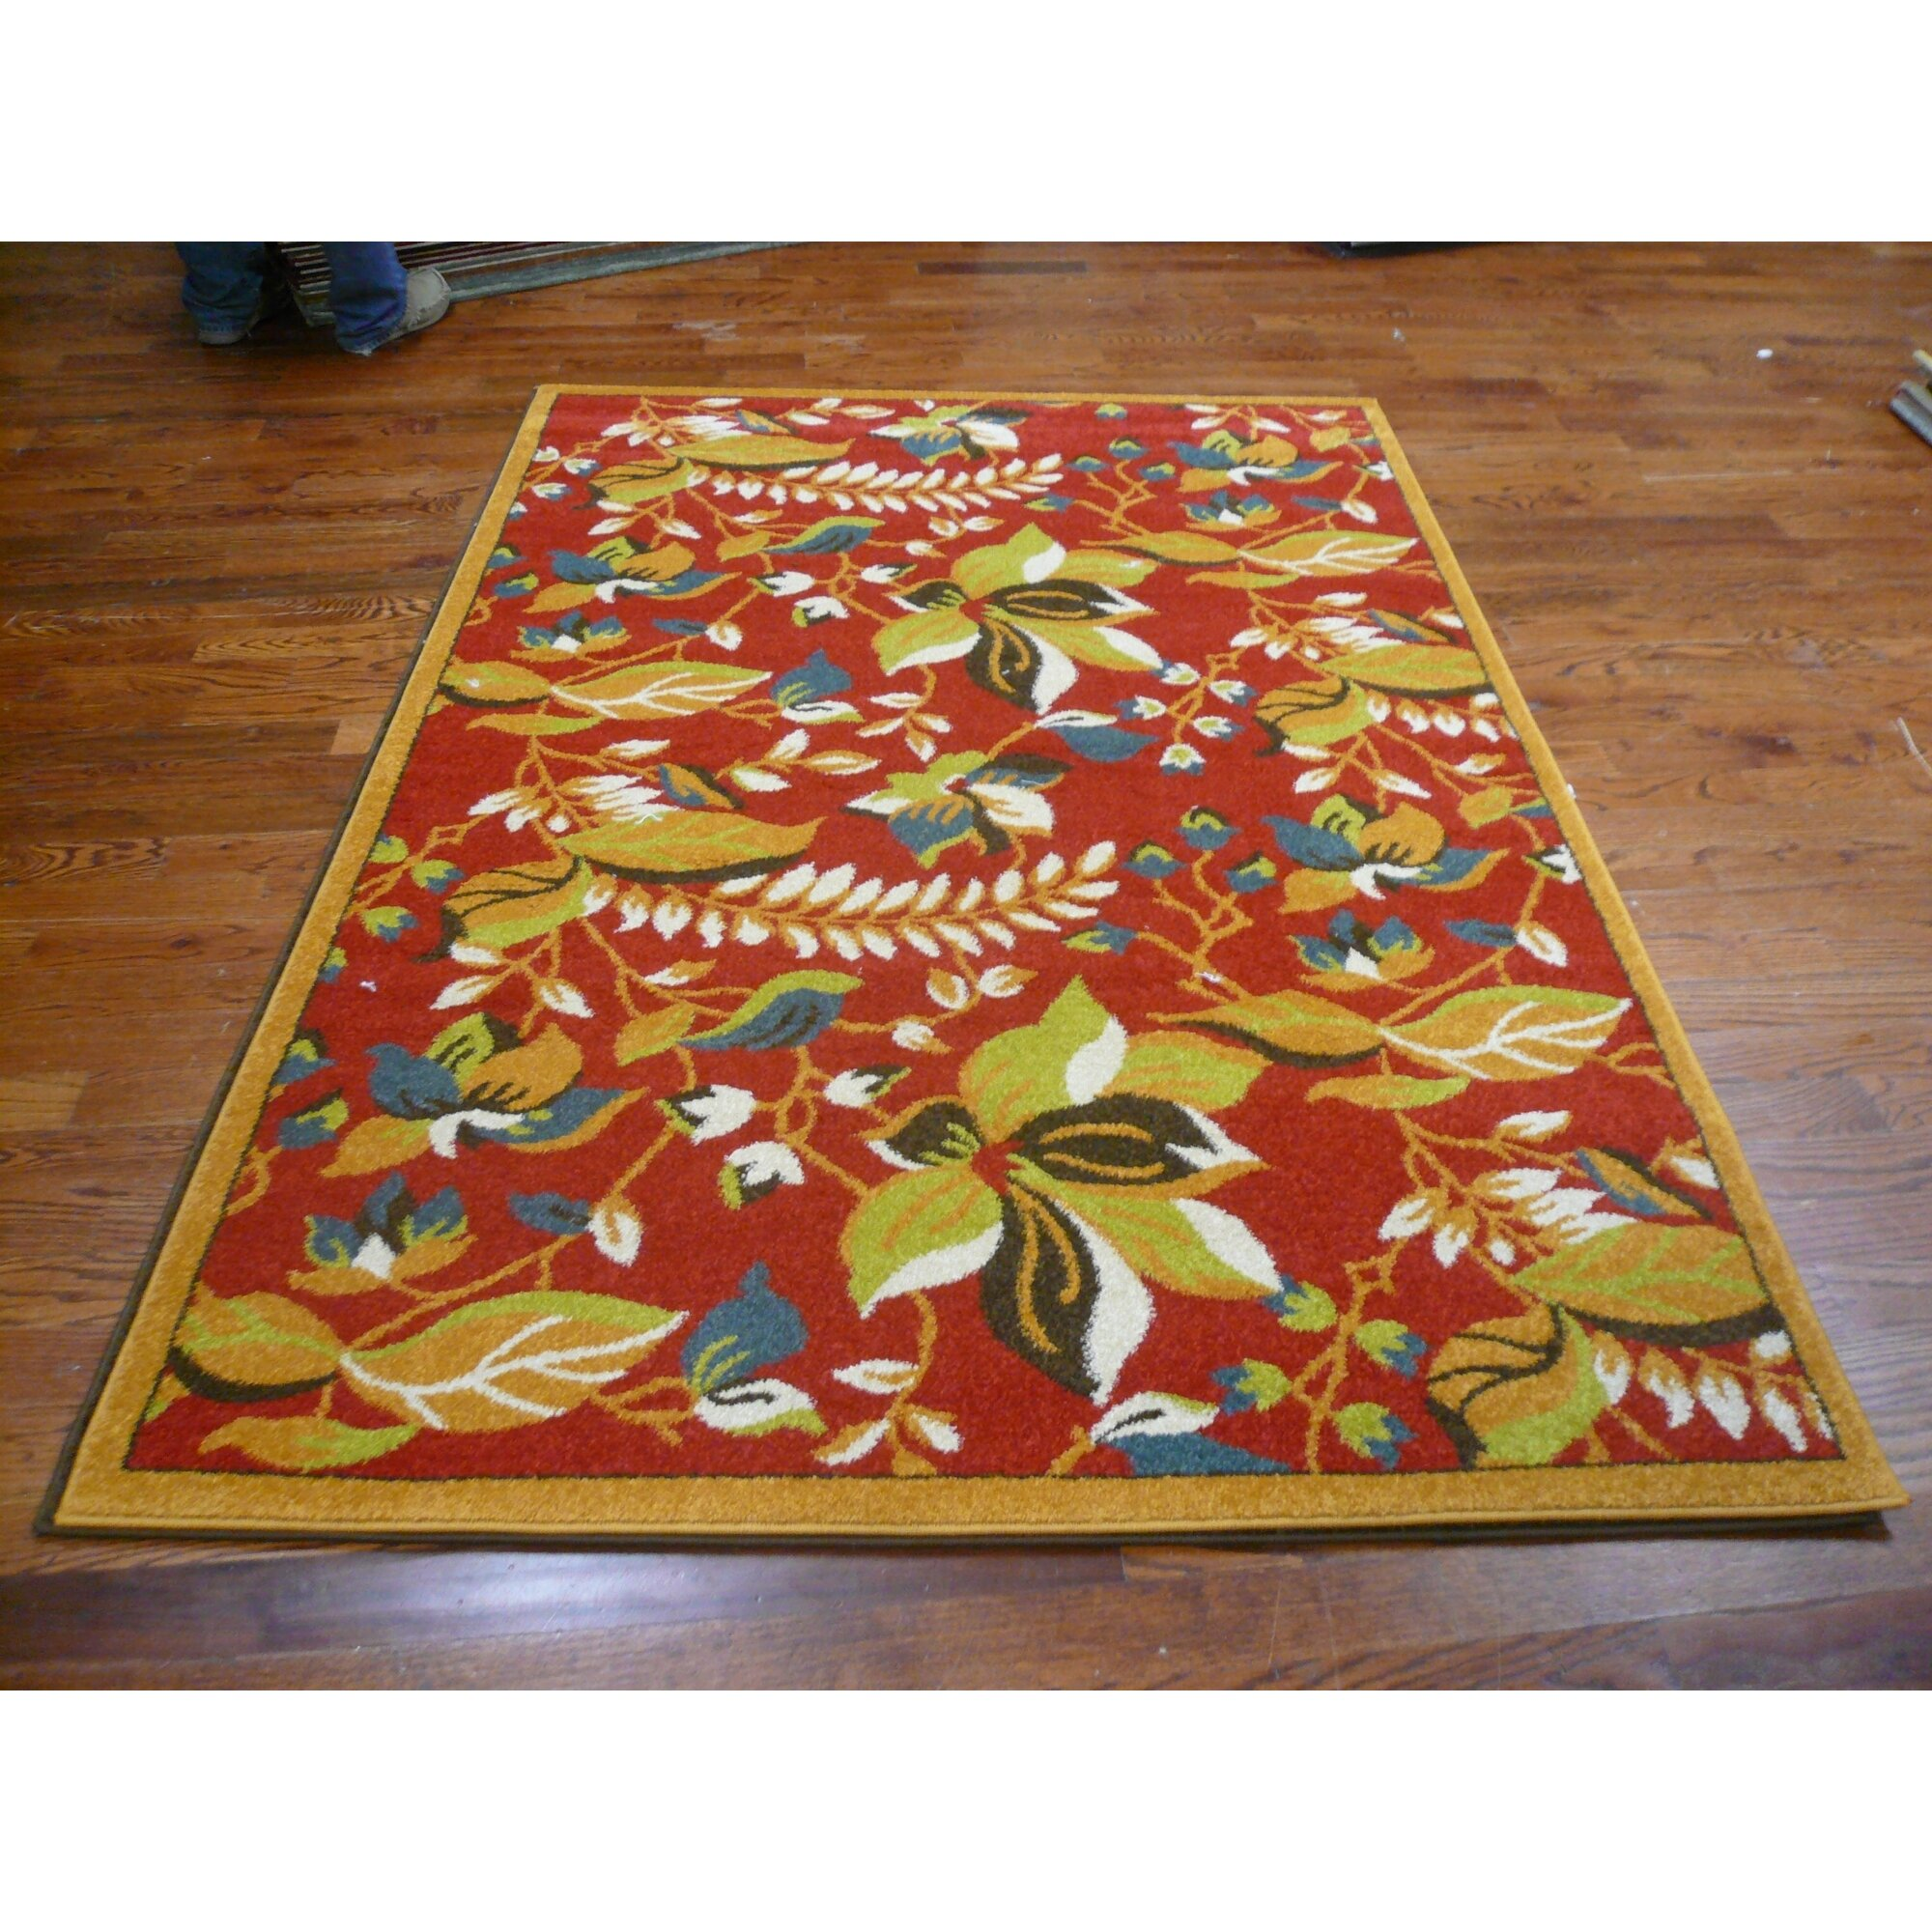 Safavieh newport red gold floral area rug wayfair for Red and gold area rugs